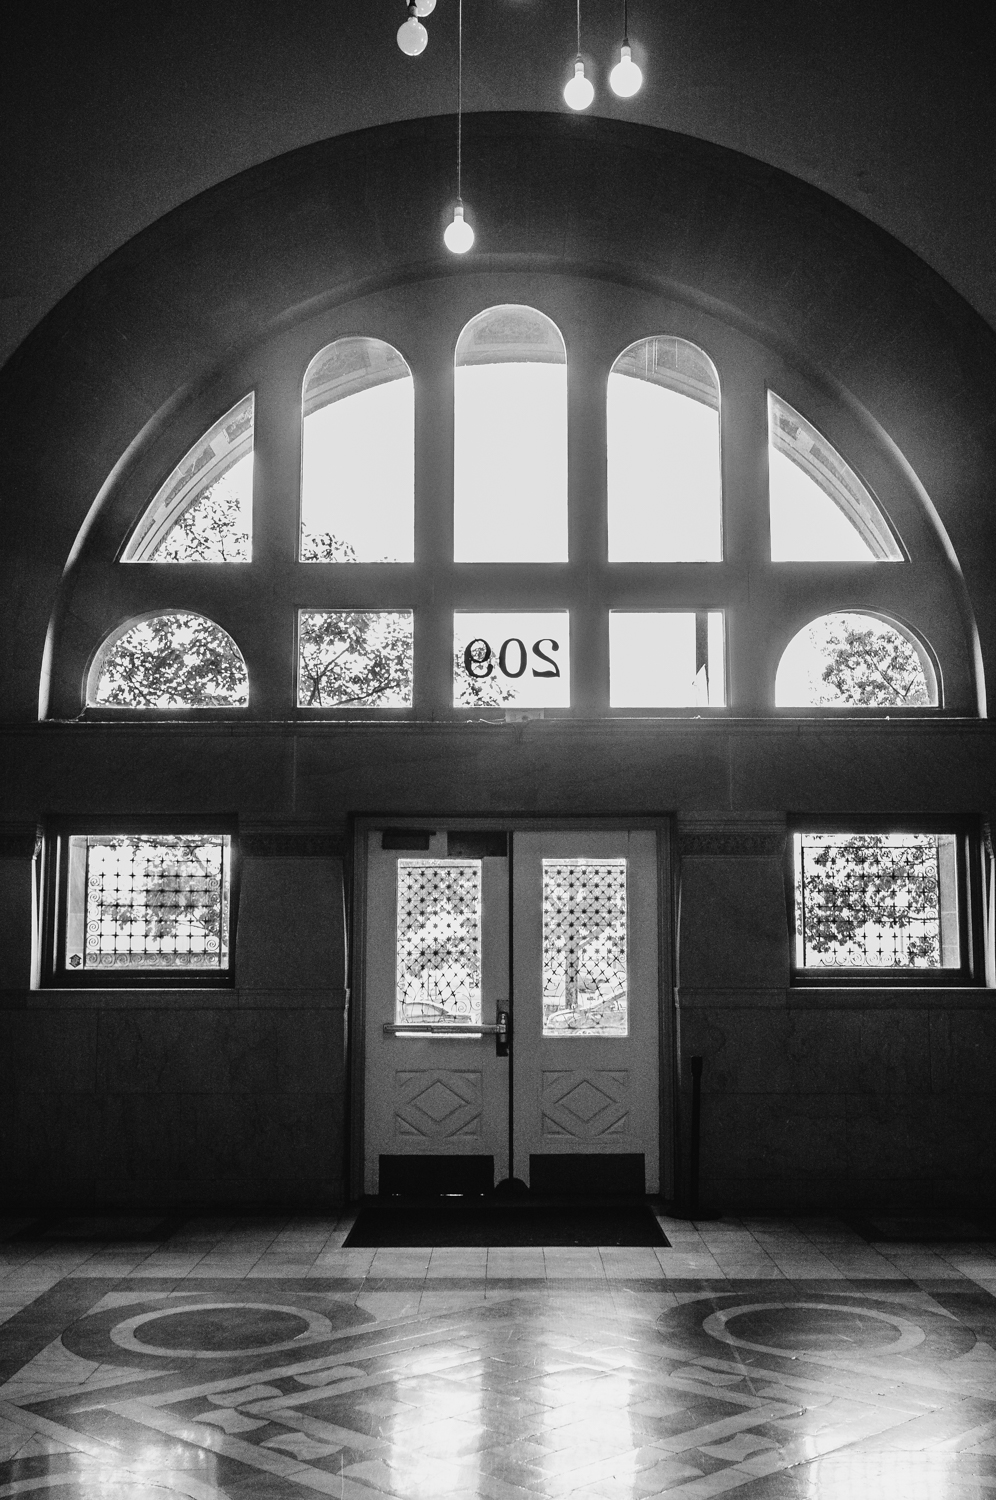 This was once the main entrance to our building... Now, it now acts as a sort of  back room and you can only leave through these doors. It has all the markings of a grand entrance, but no one really enters this way any more. Kind of sad.